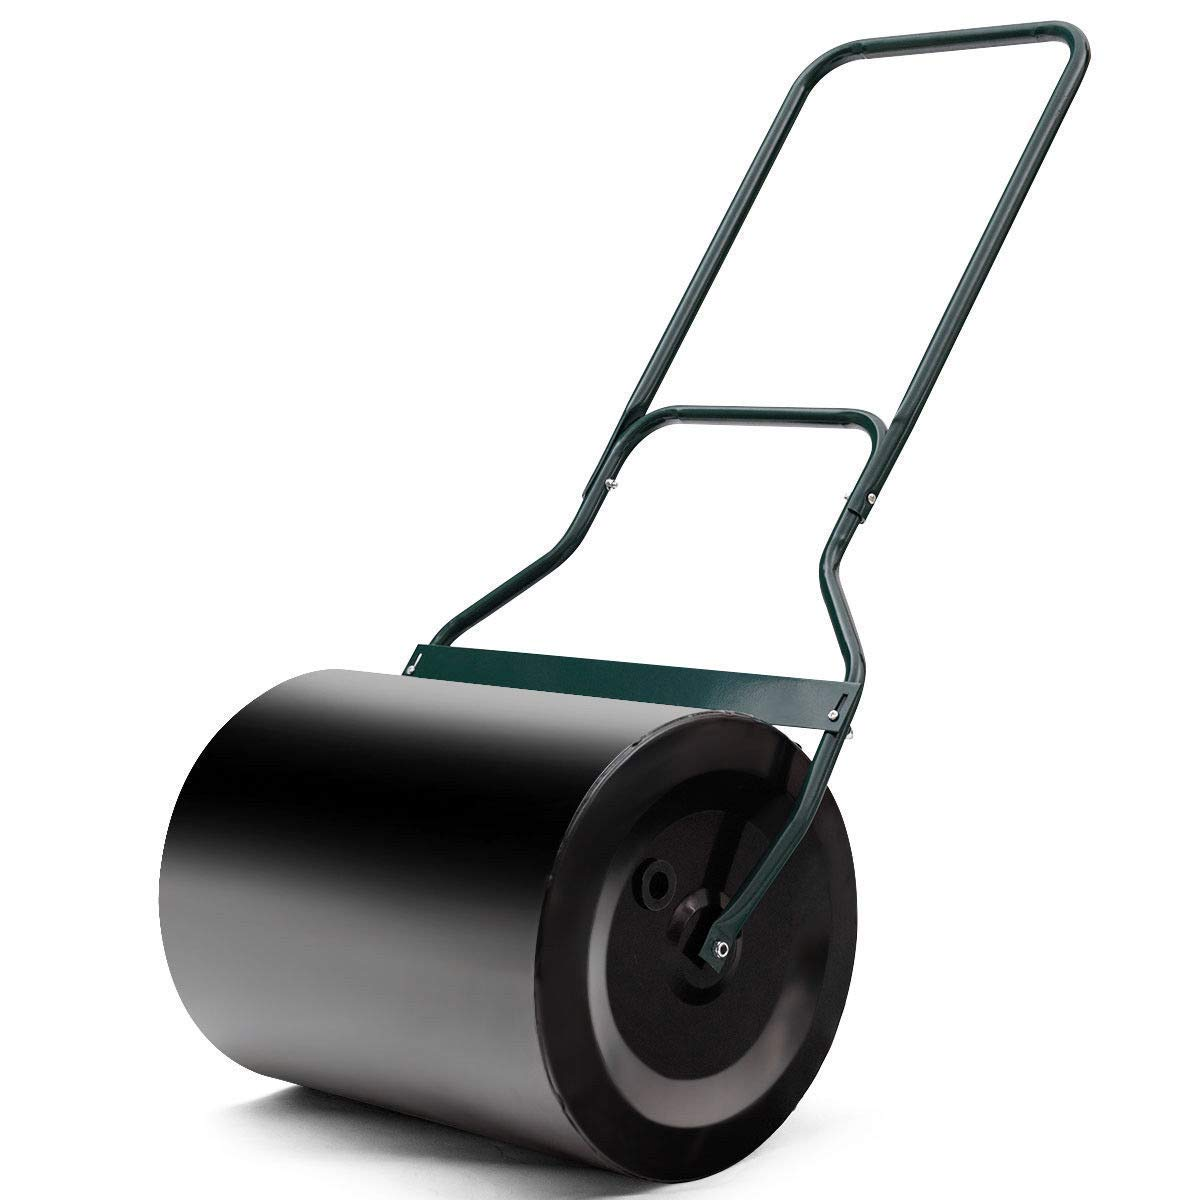 Goplus Lawn Roller Tow Behind Water Filled Roller, 16 by 20-Inch